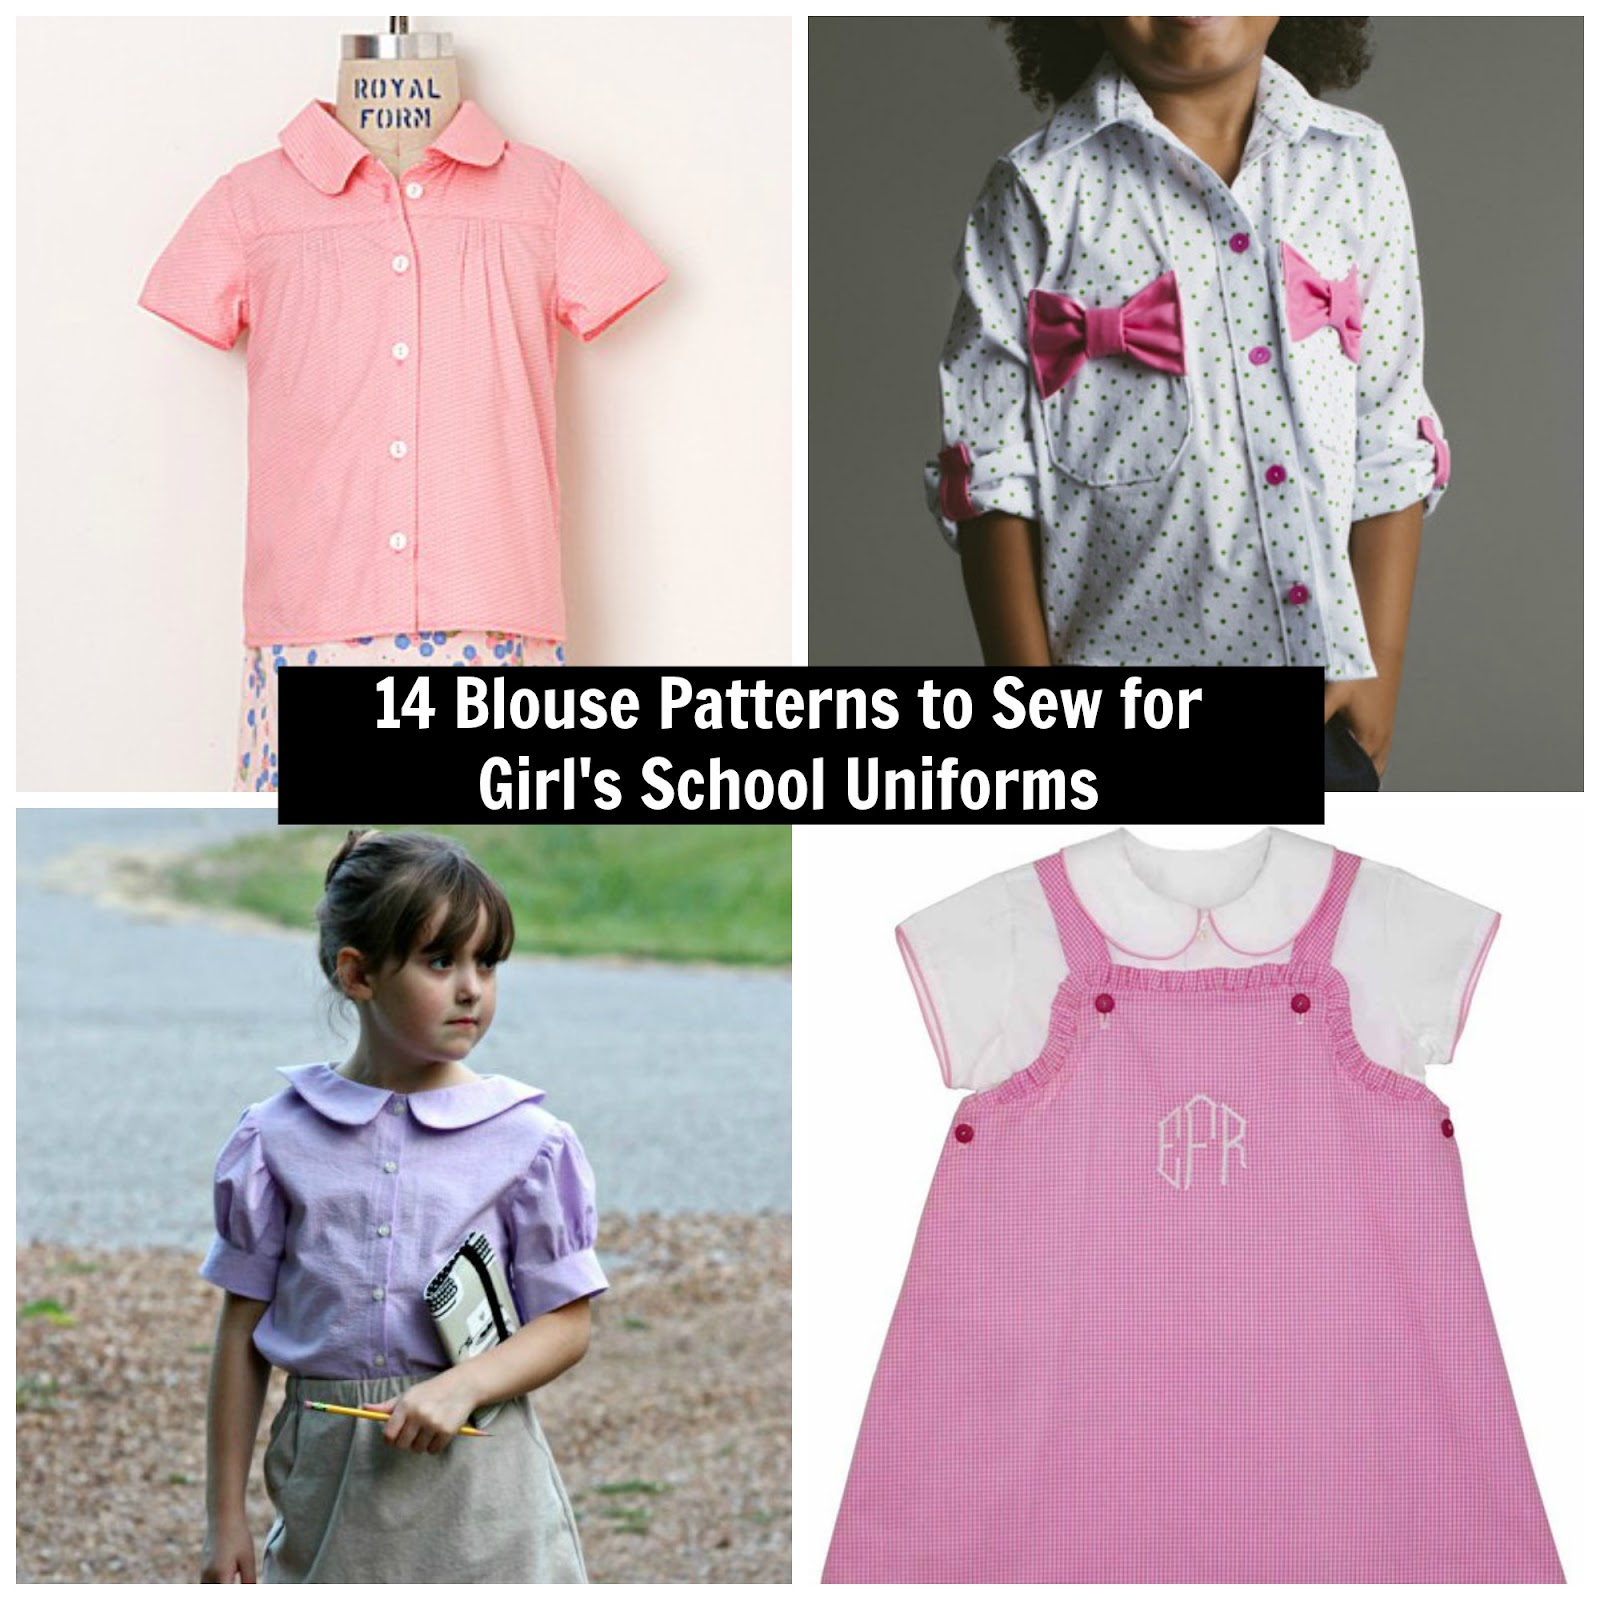 Project run and play contributor post 14 blouse patterns for below youll find 14 great blouse patterns to sew for girls school uniforms as you will see ive actually sewn many of these myself and i own all but jeuxipadfo Image collections